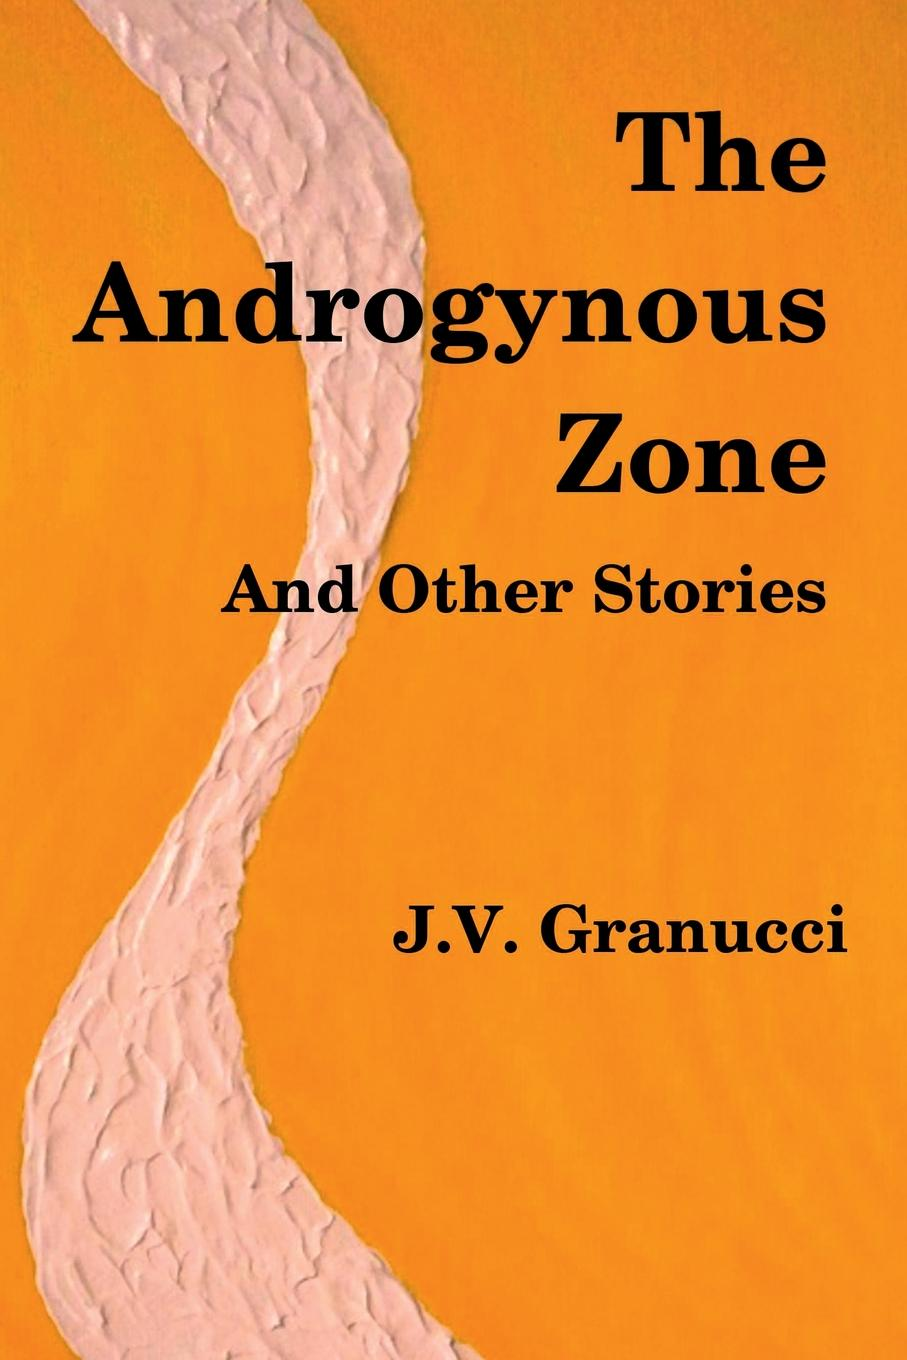 J.V. Granucci The Androgynous Zone and Other Stories feher zone 5 – fragments for a history of the human body – part 3 paper